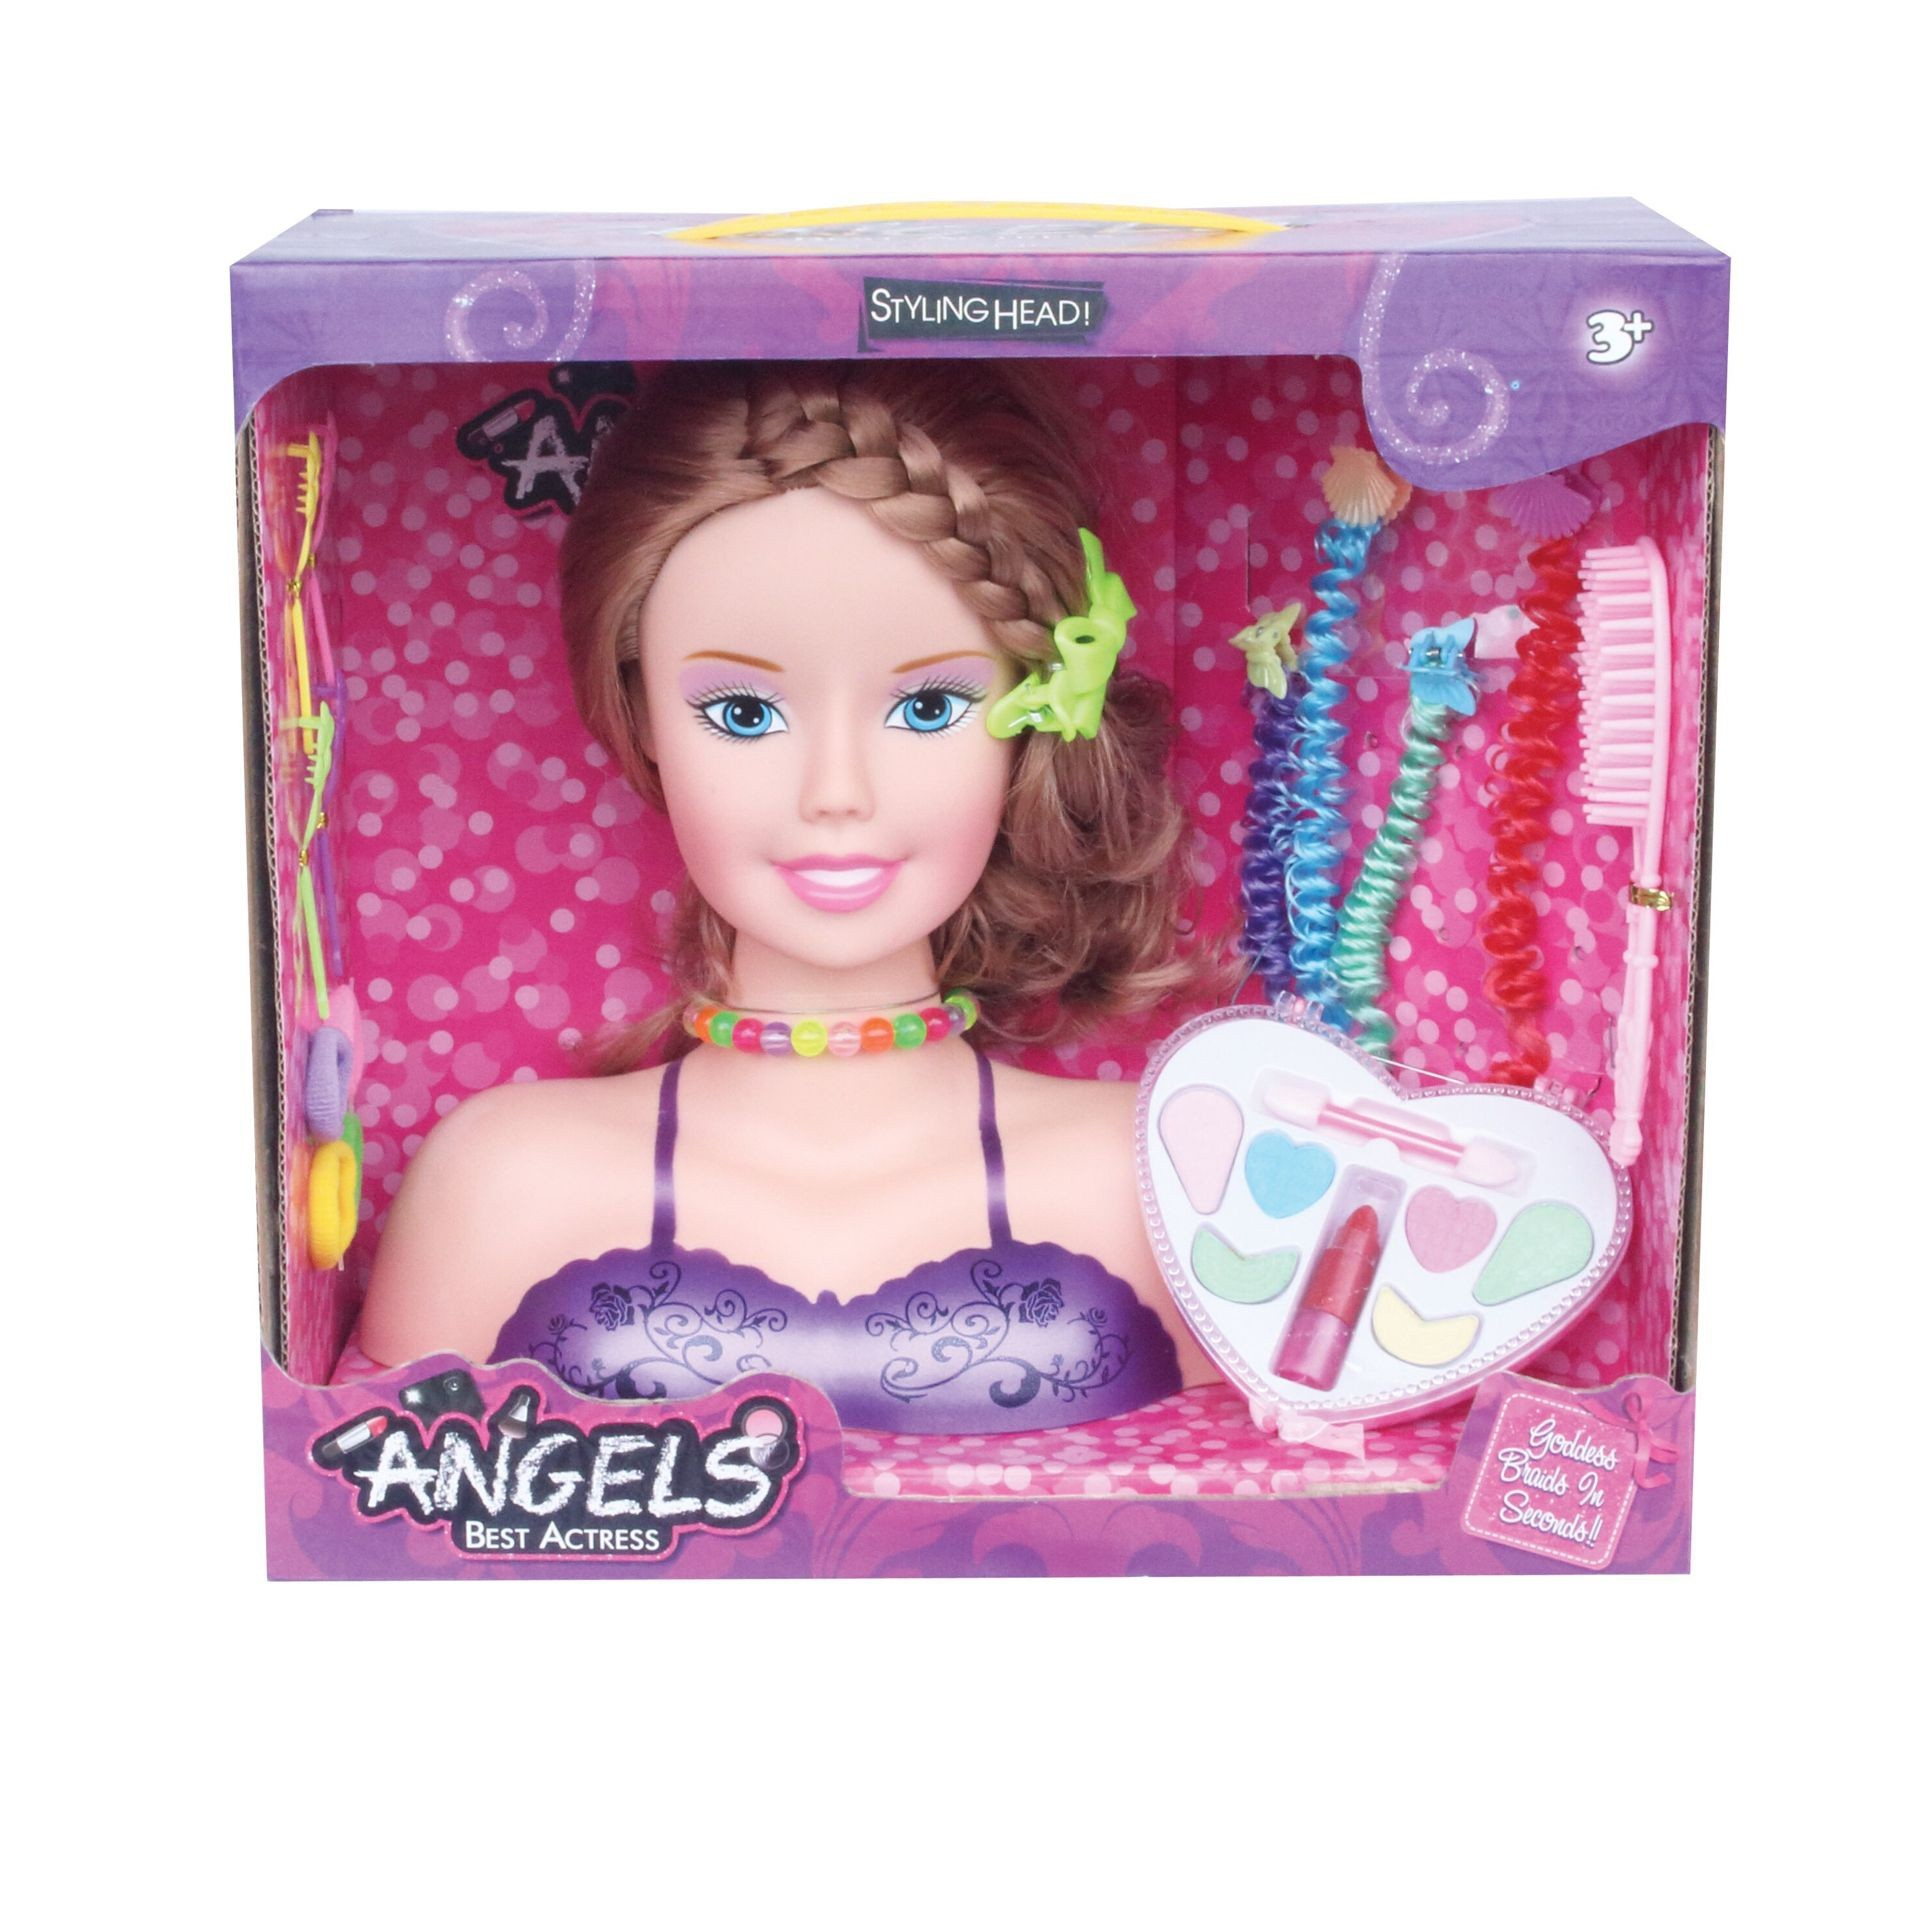 Princess Styling Head Playset With Fashion Accessories